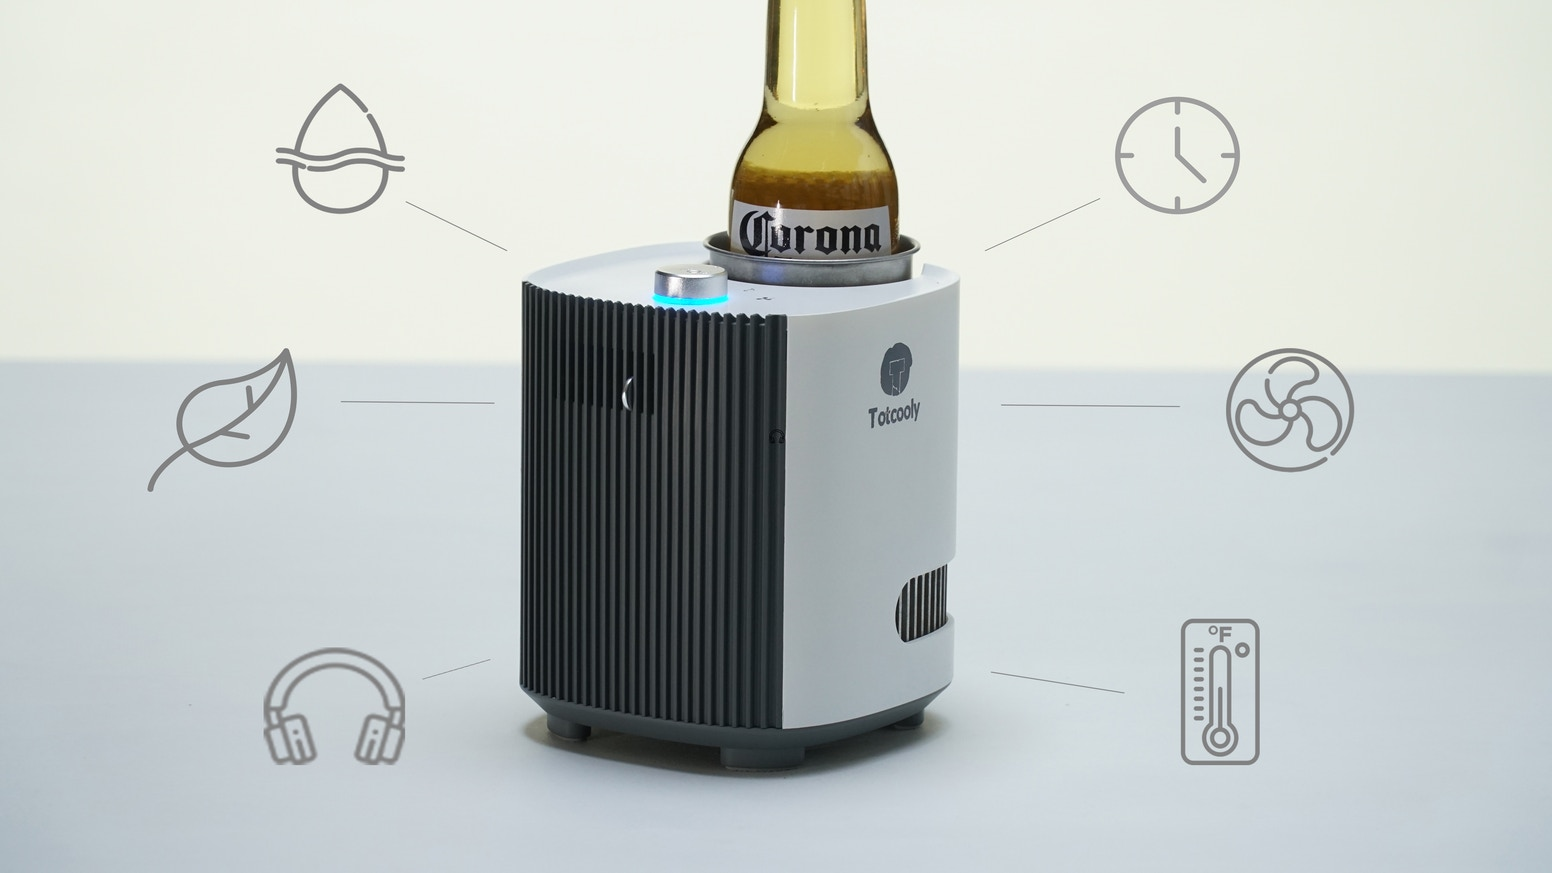 Cools you down, purifies the air, keeps beverages at the perfect temperature